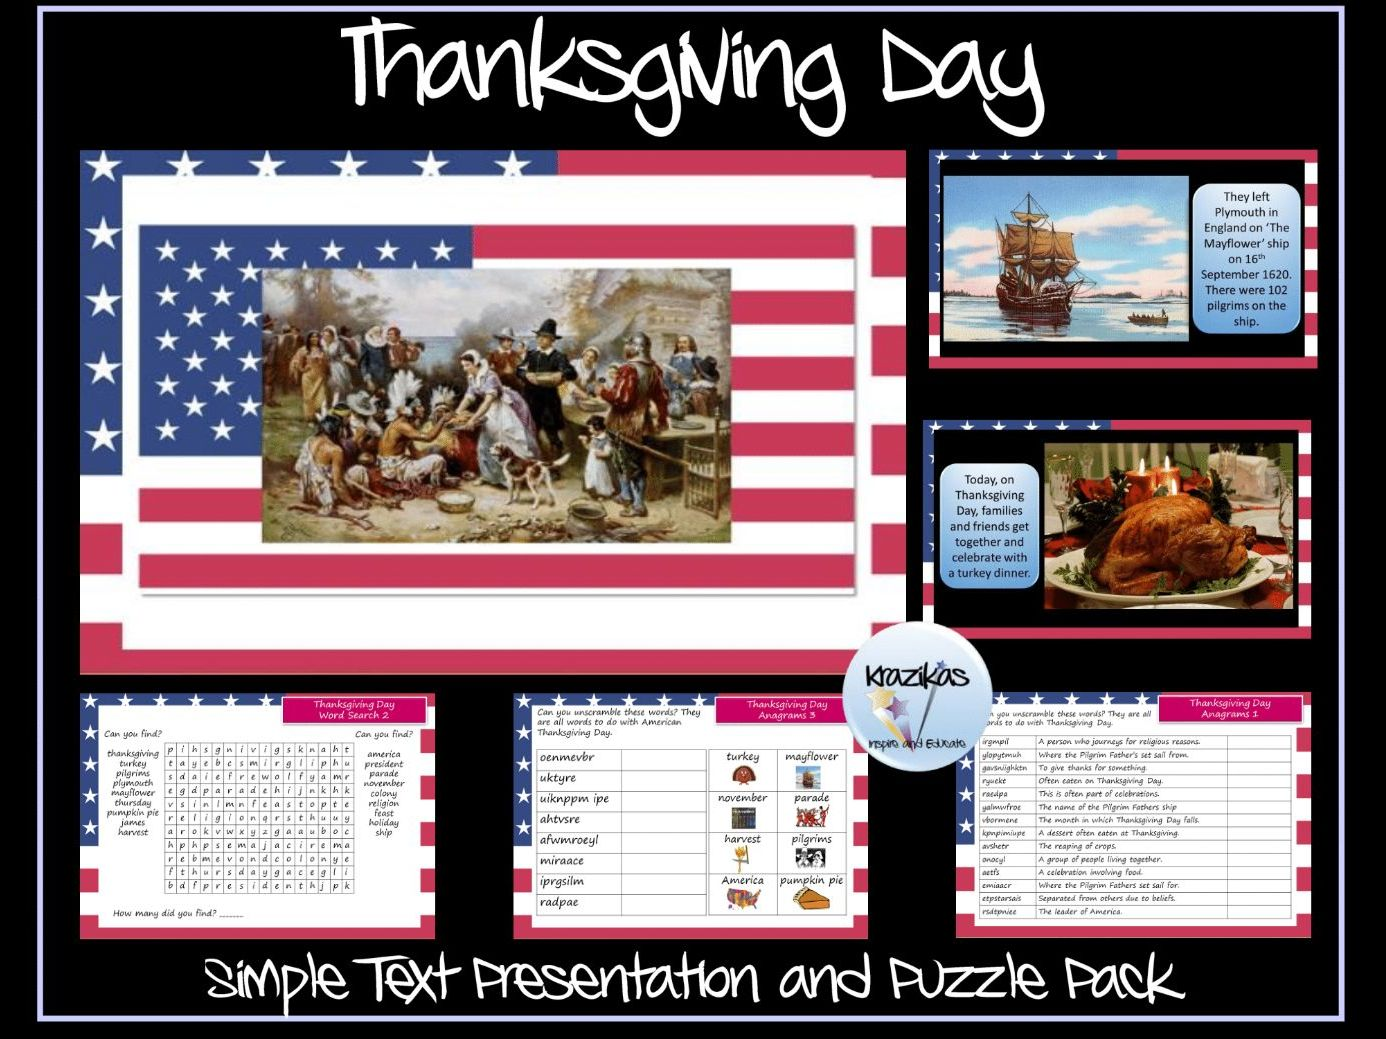 Thanksgiving Day Puzzle Pack